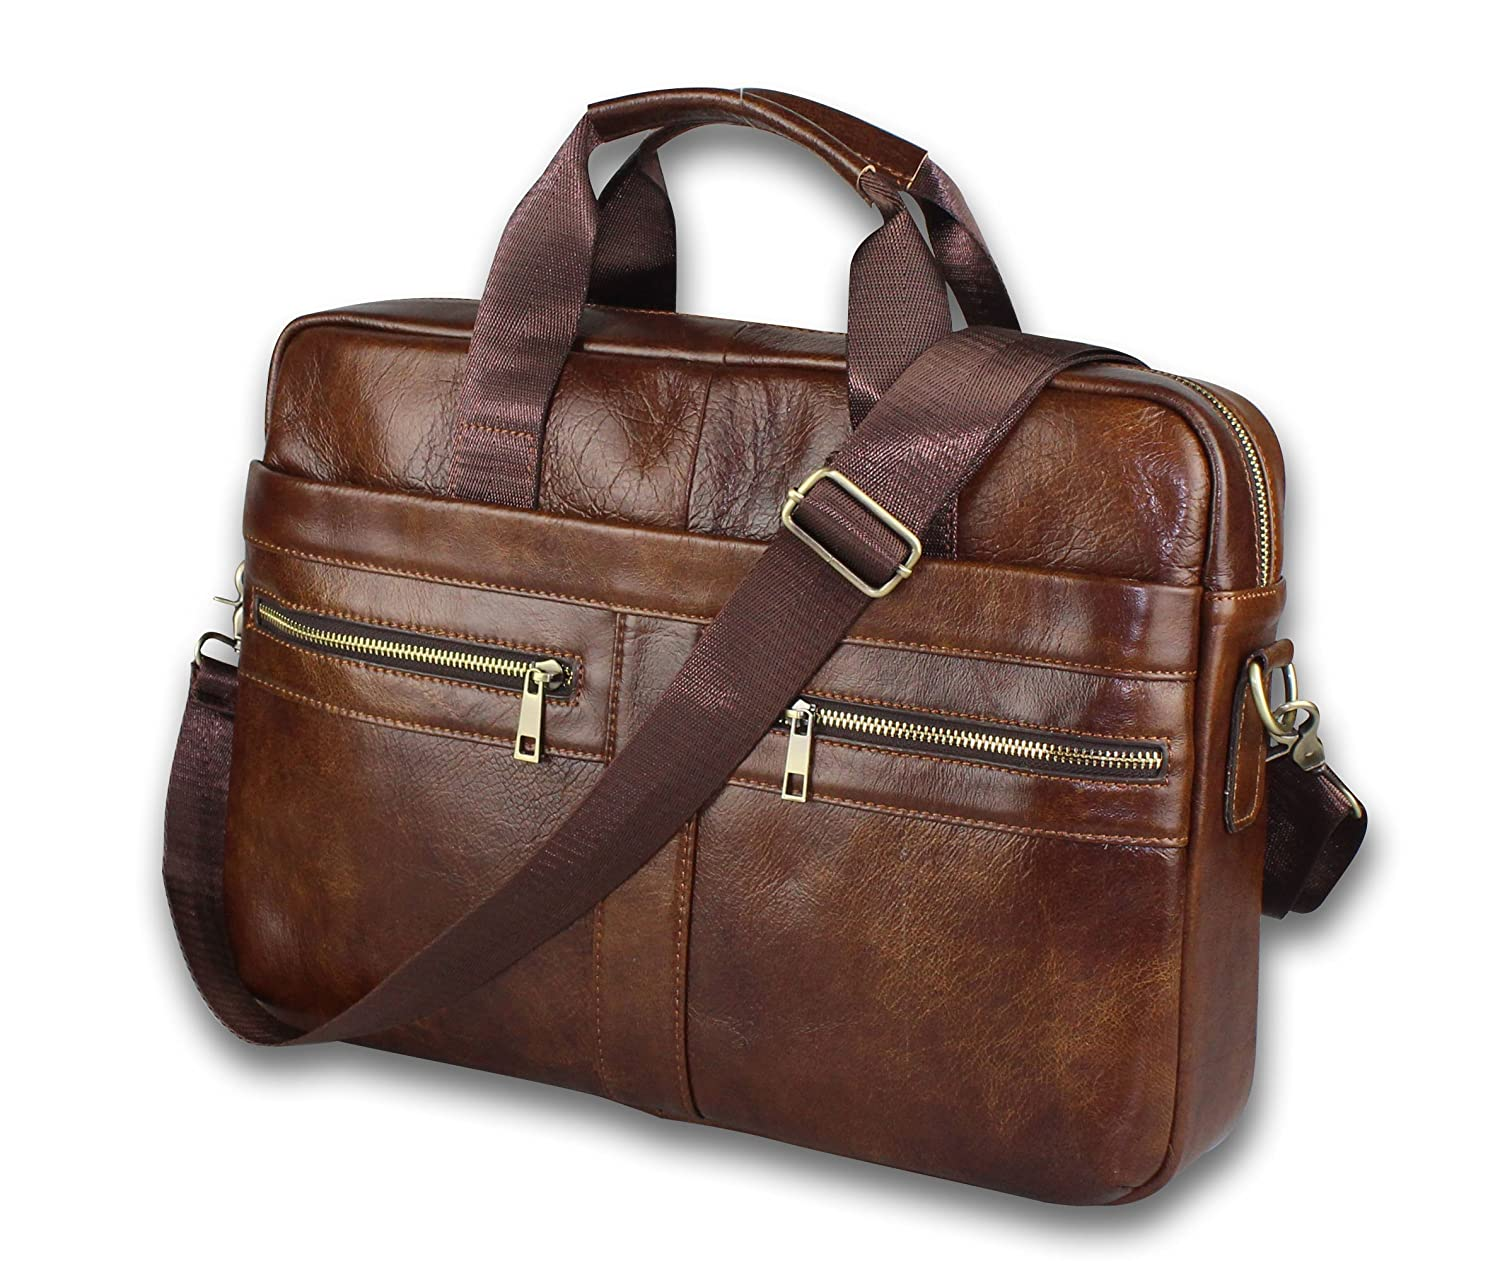 Vintage Genuine Leather Messenger Bag for Men - Brown Color - Padded Laptop Protection - fits 13 inch Computer or Tablet - Carried as Briefcase Shoulder or Crossbody Bag with Adjustable Strap Party Exports Limited TLB001